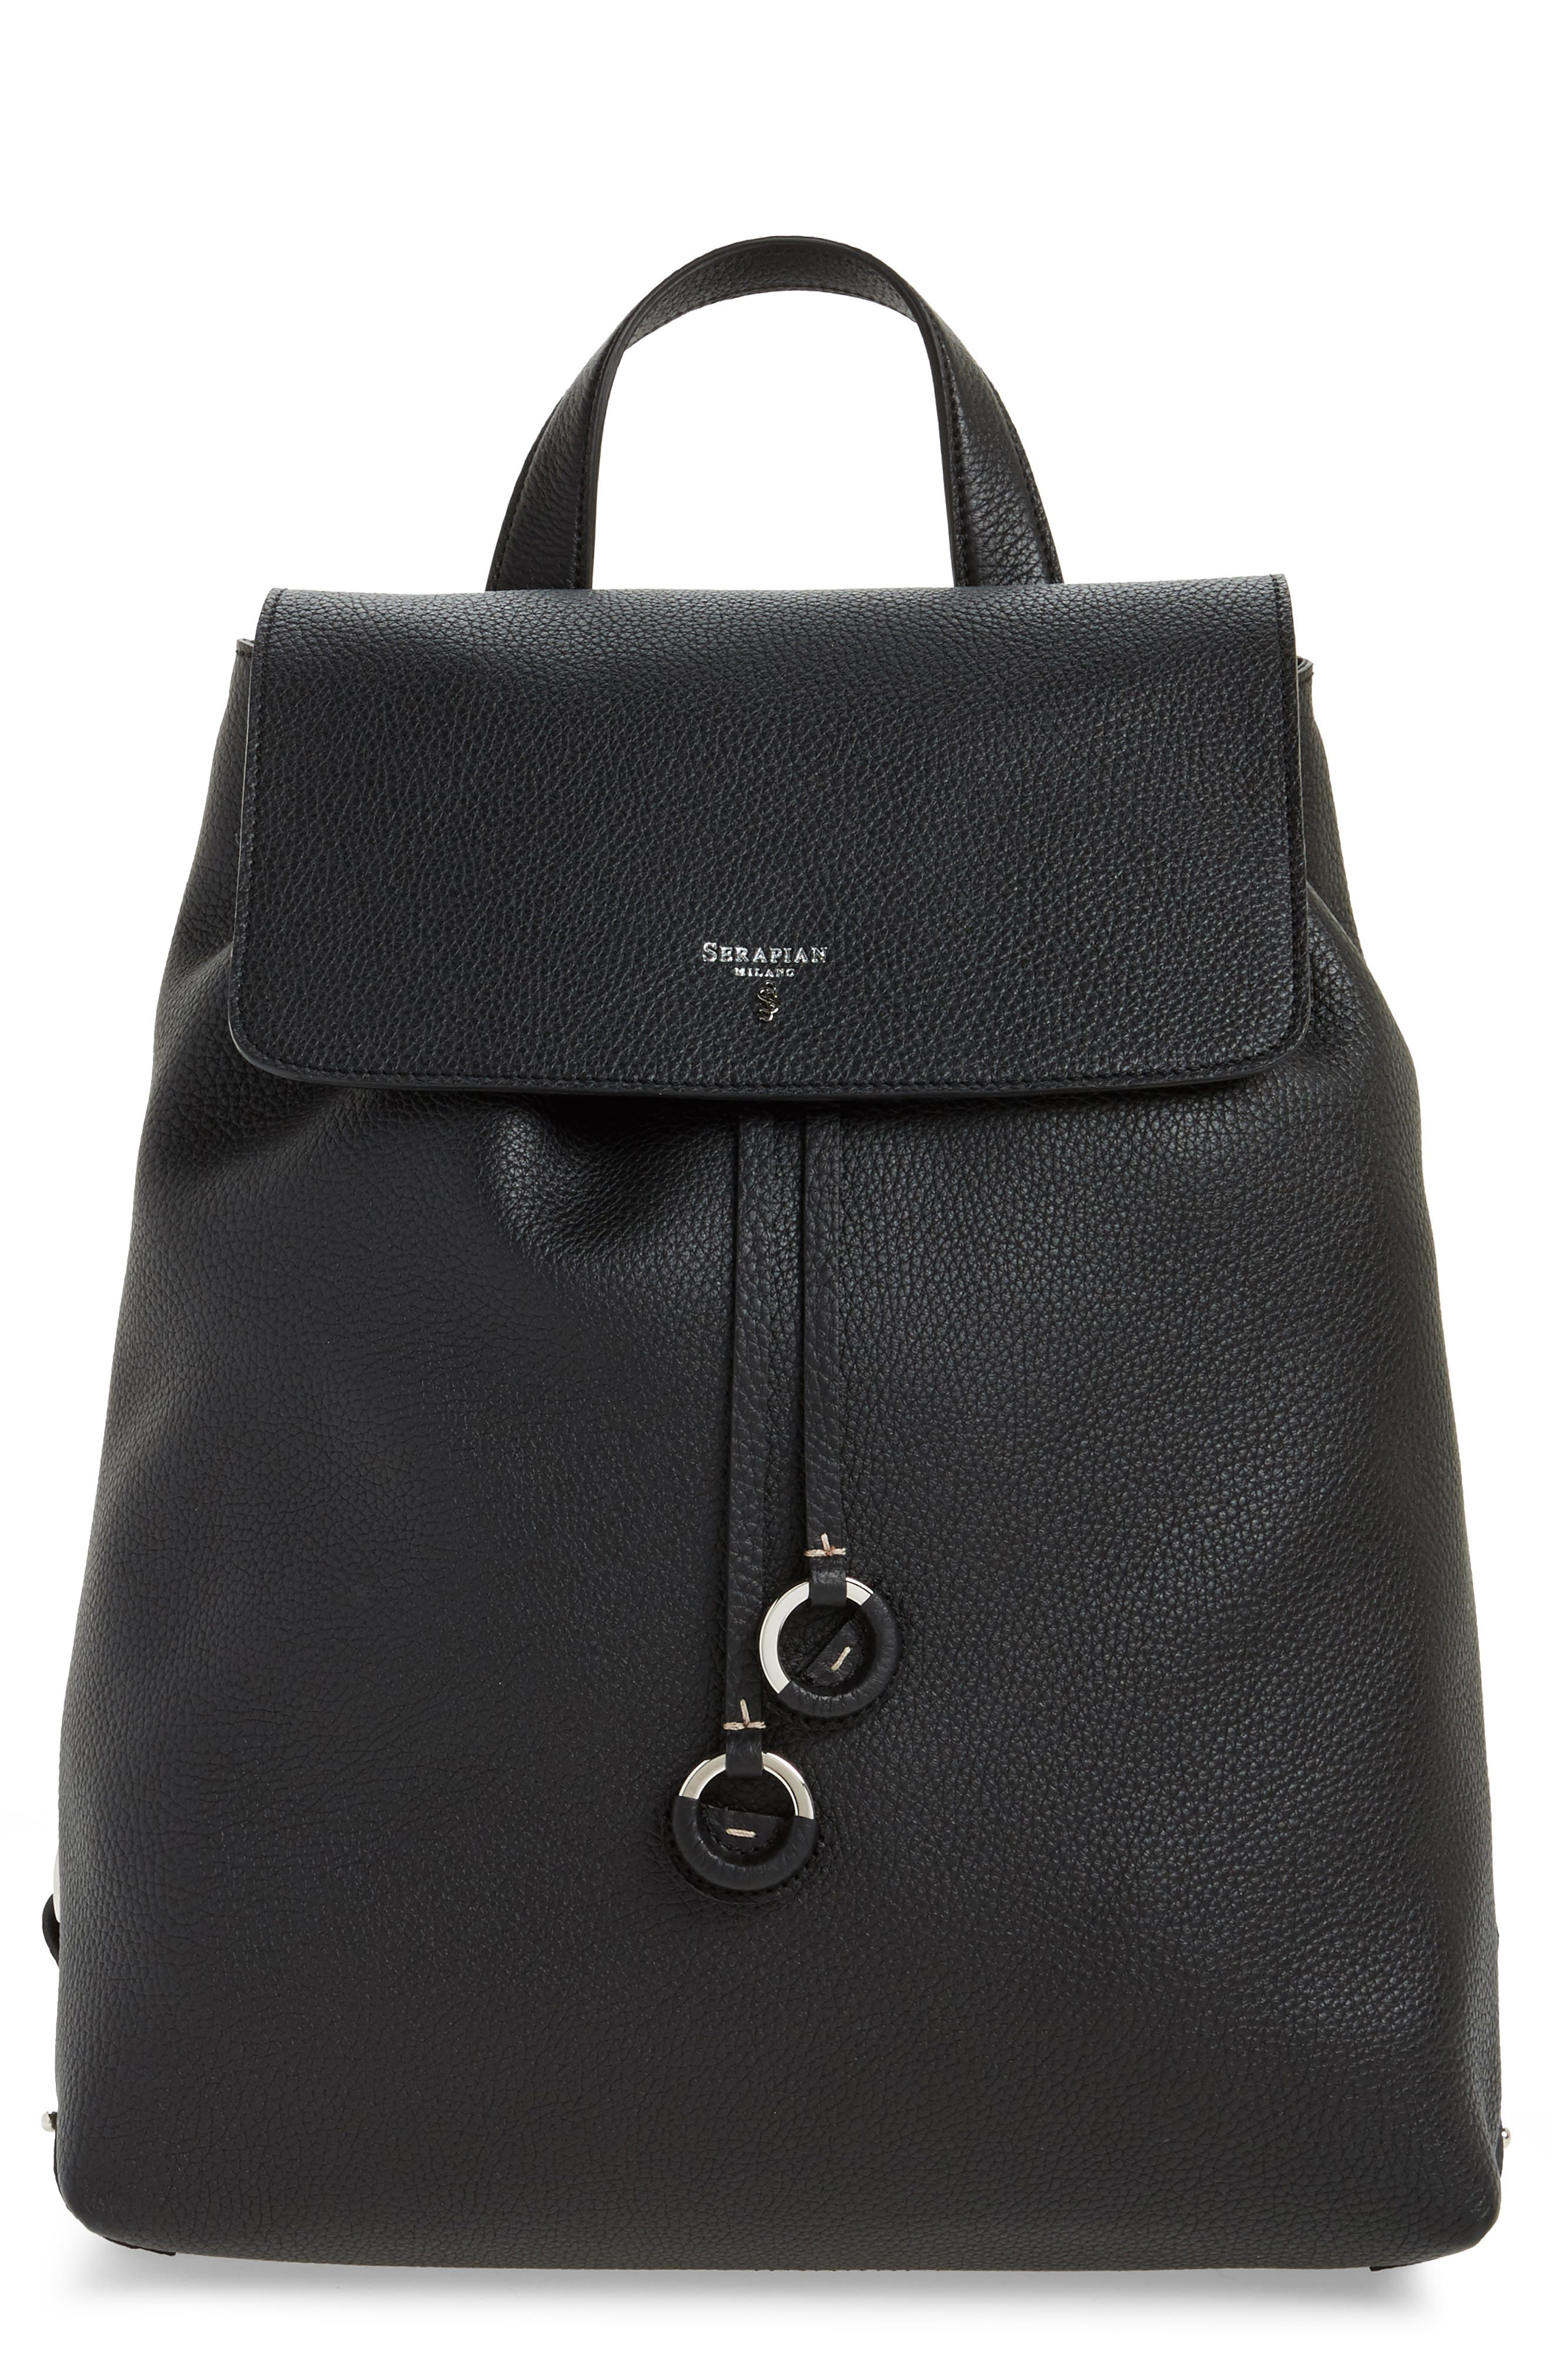 Main Image - Serapian Milano Carmen Cachemire Leather Backpack